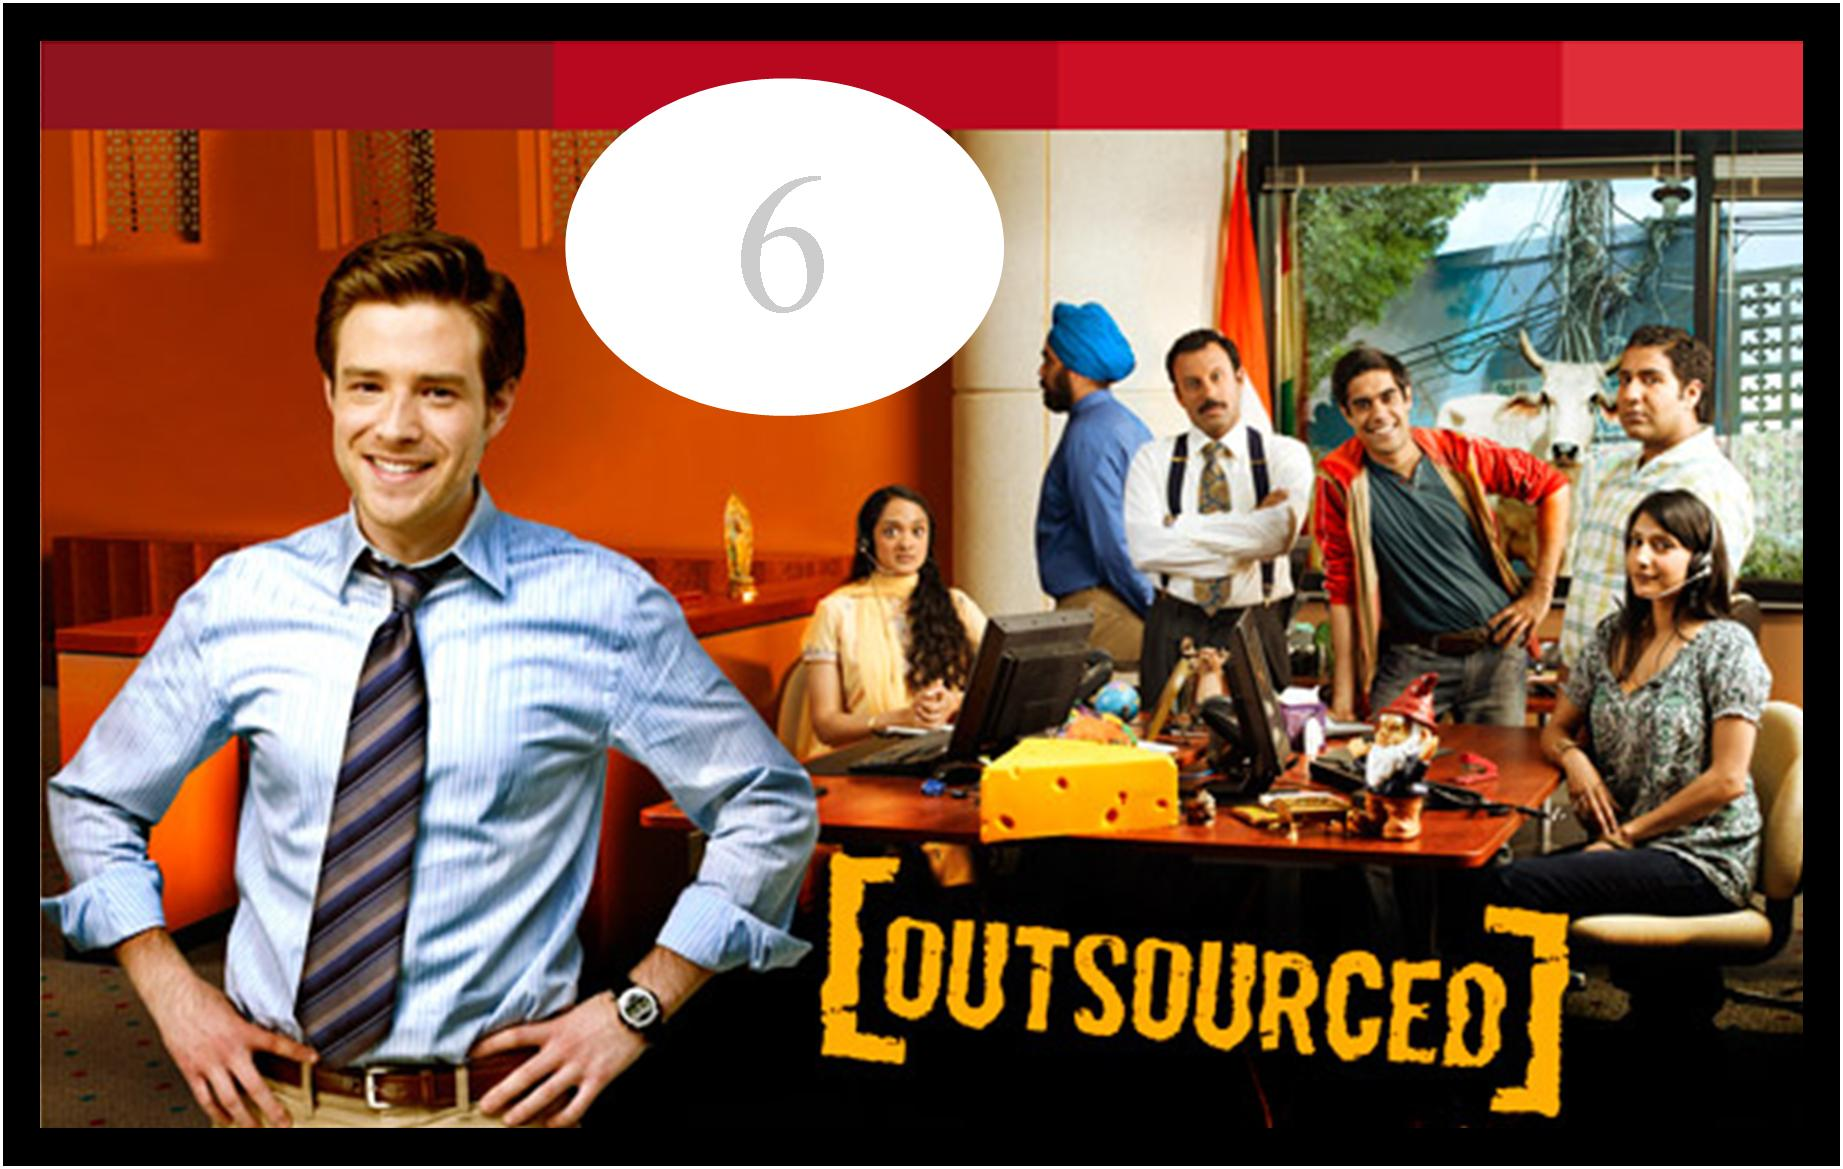 6 outsourced